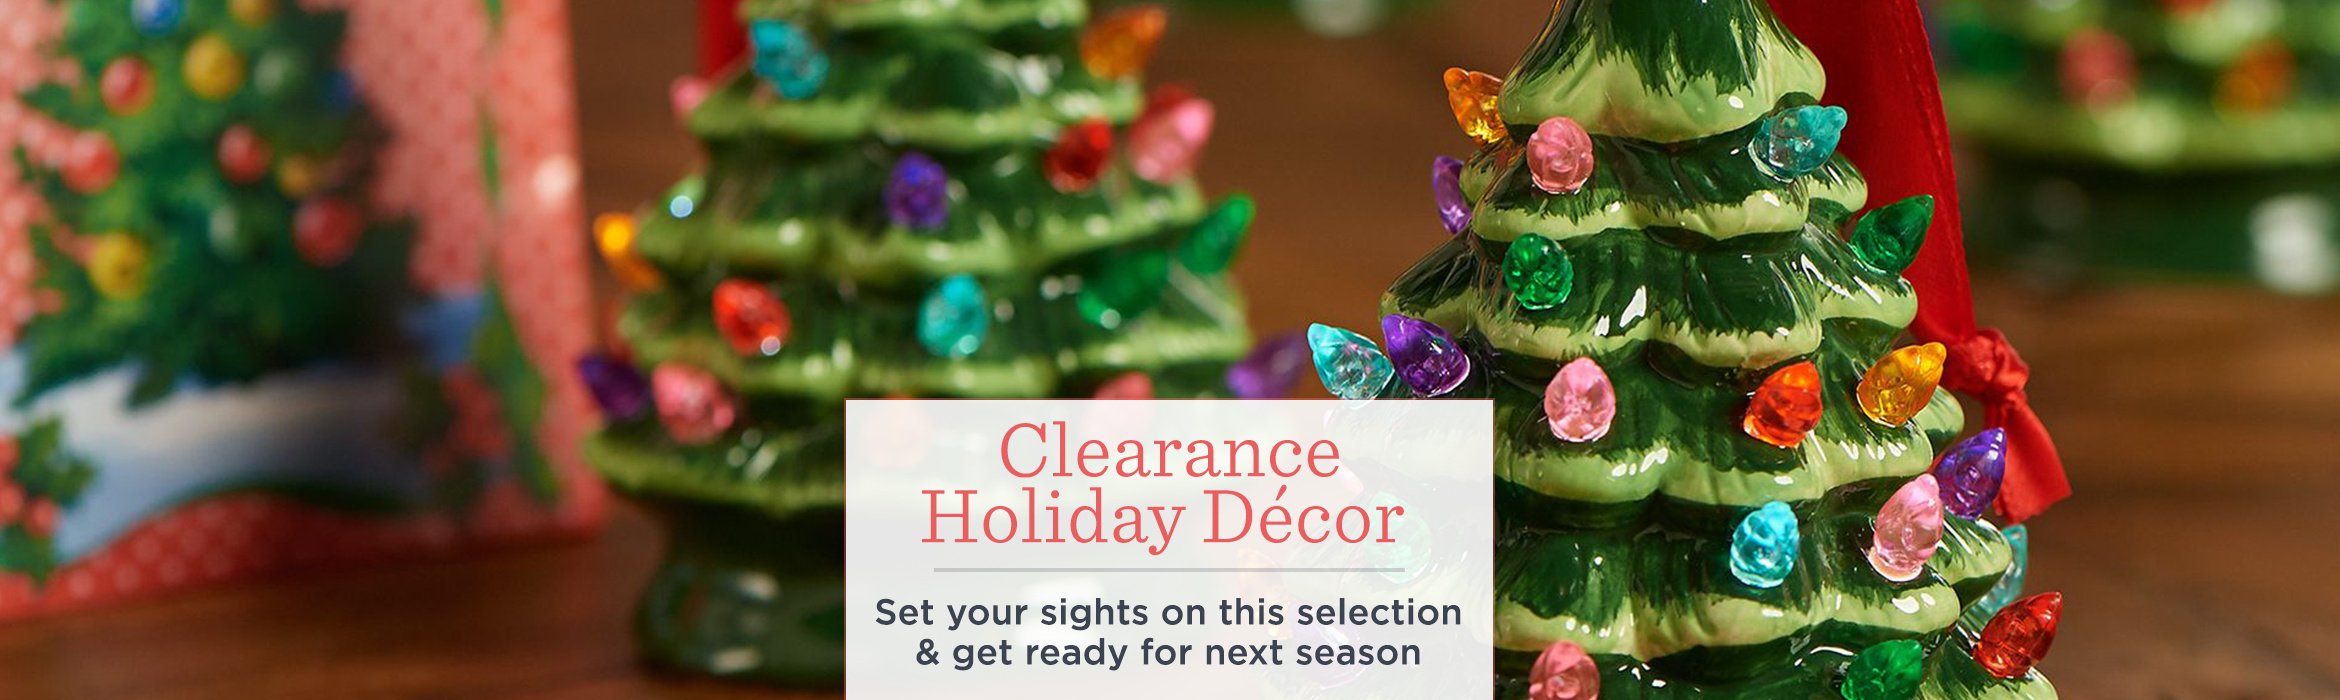 Clearance Holiday Décor  -  Set your sights on this selection & get ready for next season